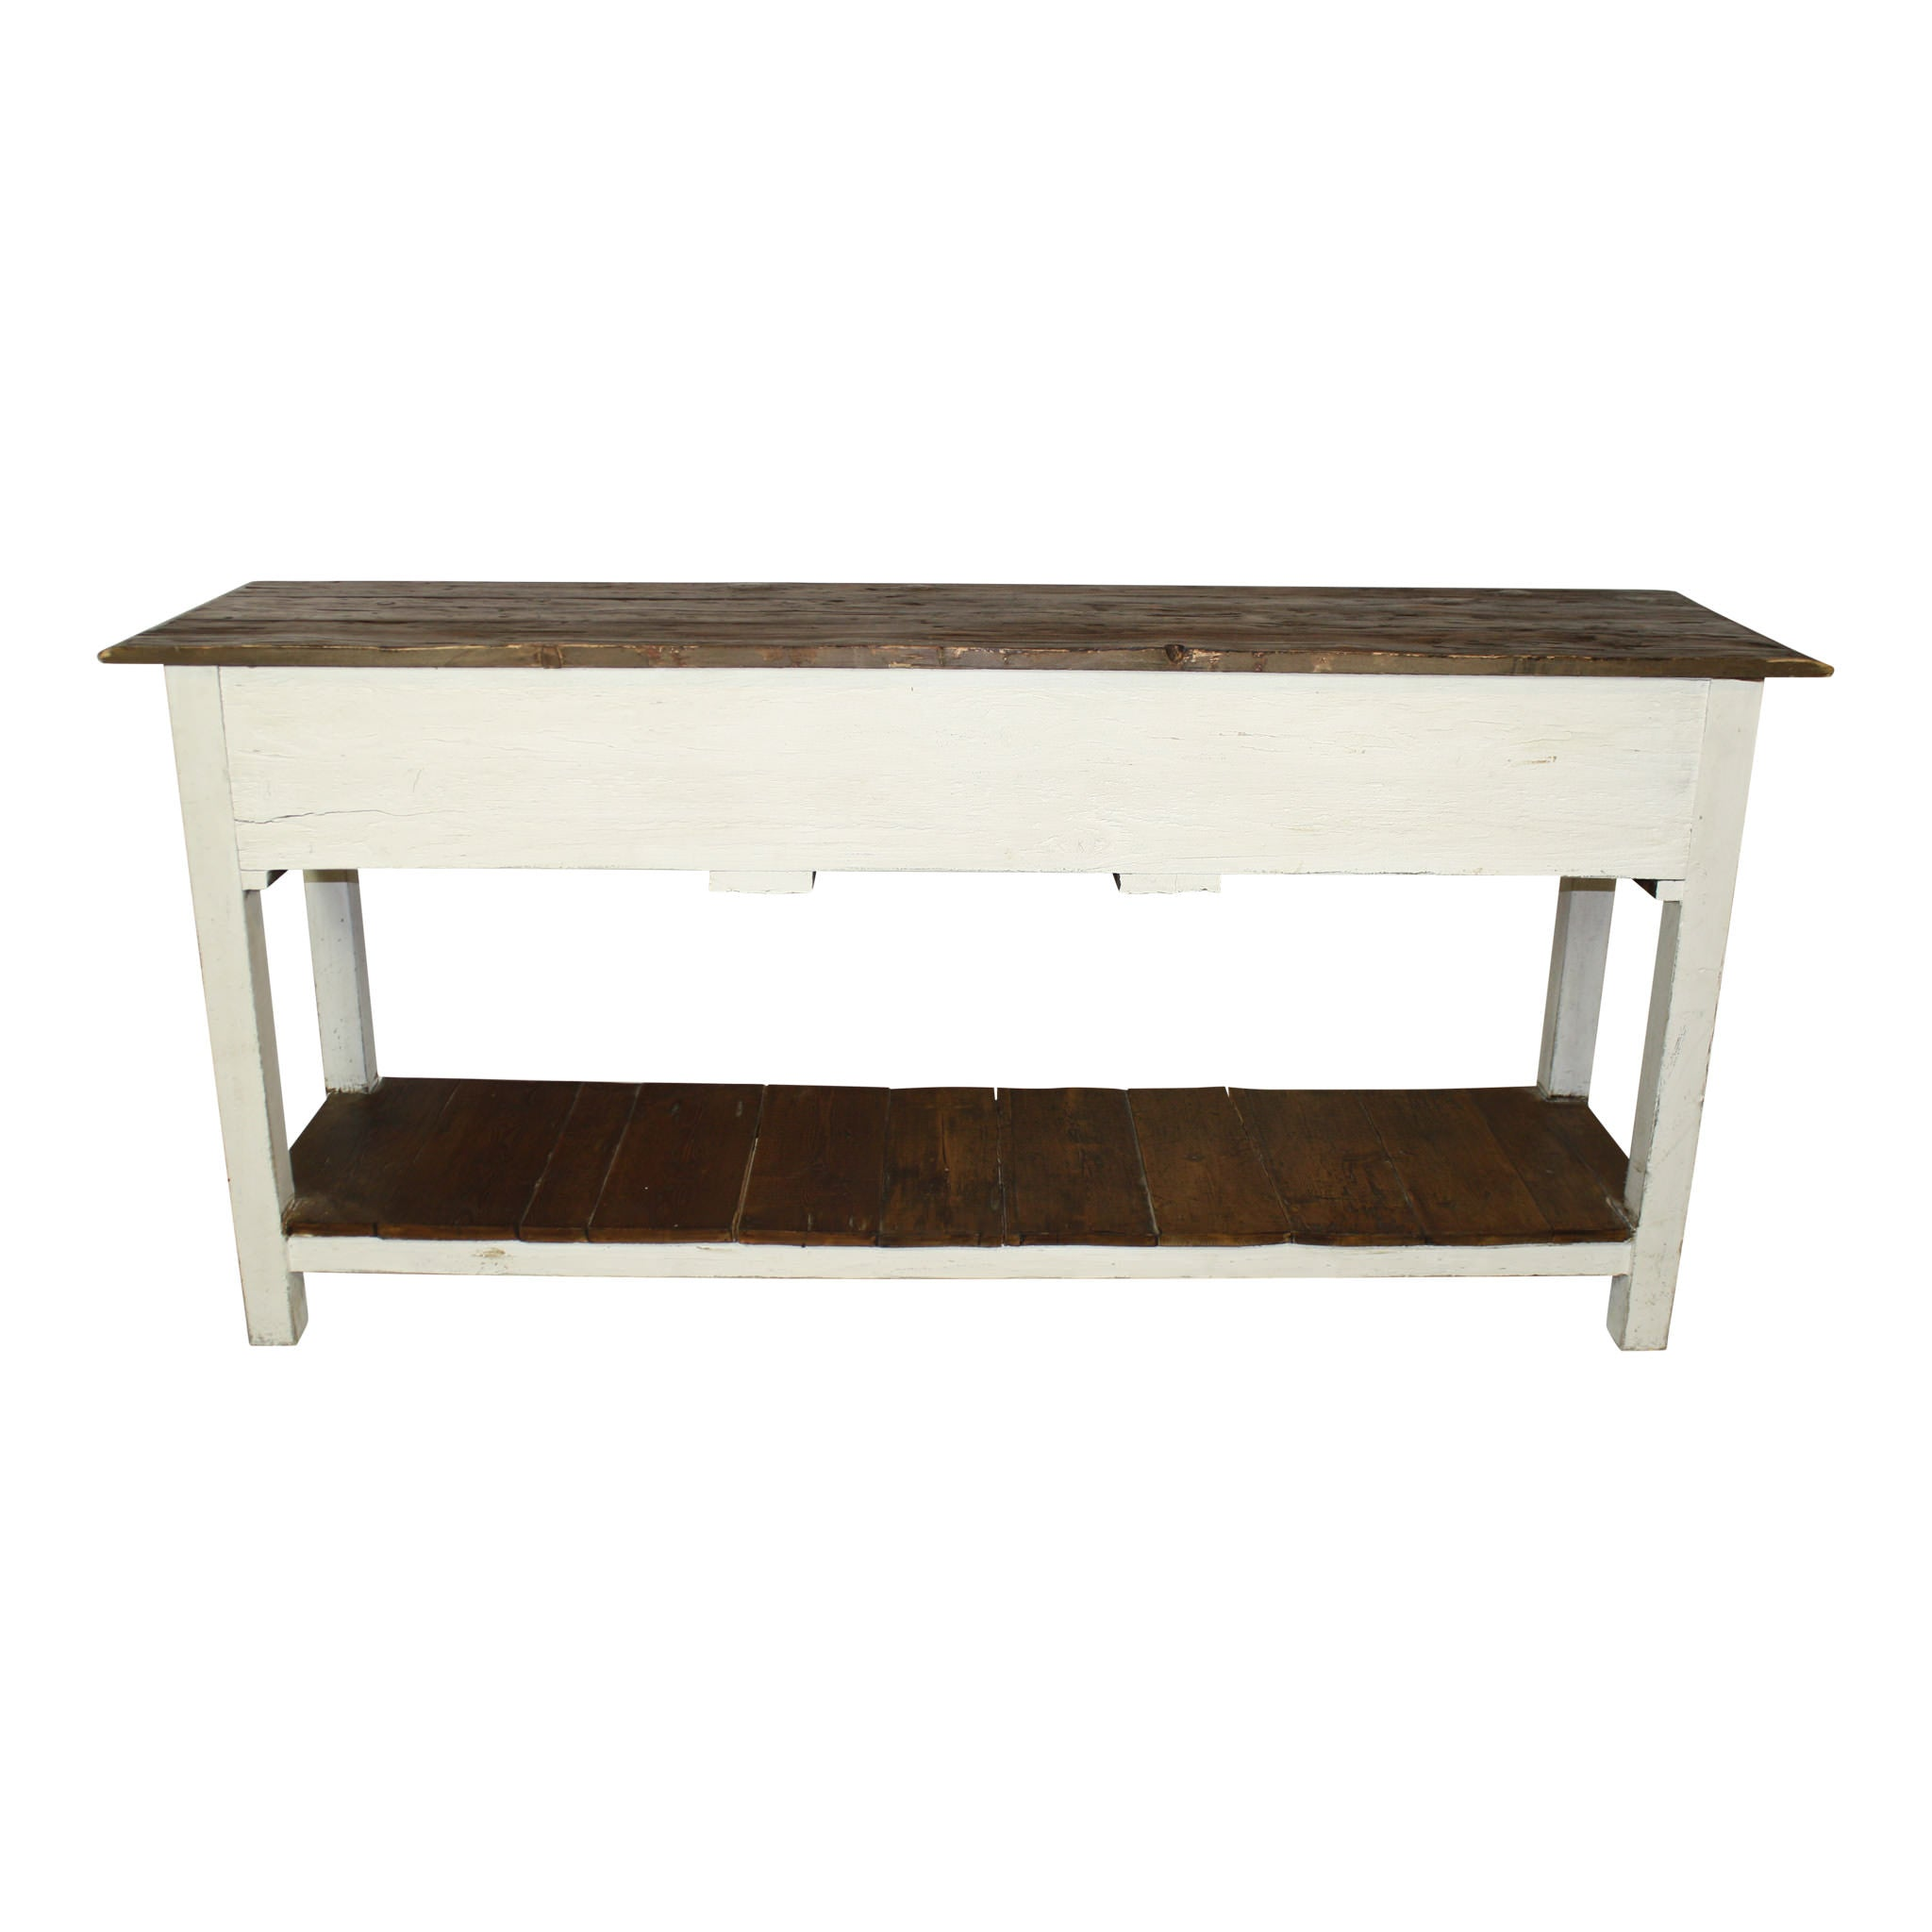 White painted sofa table ski country antiques home white painted sofa table geotapseo Image collections